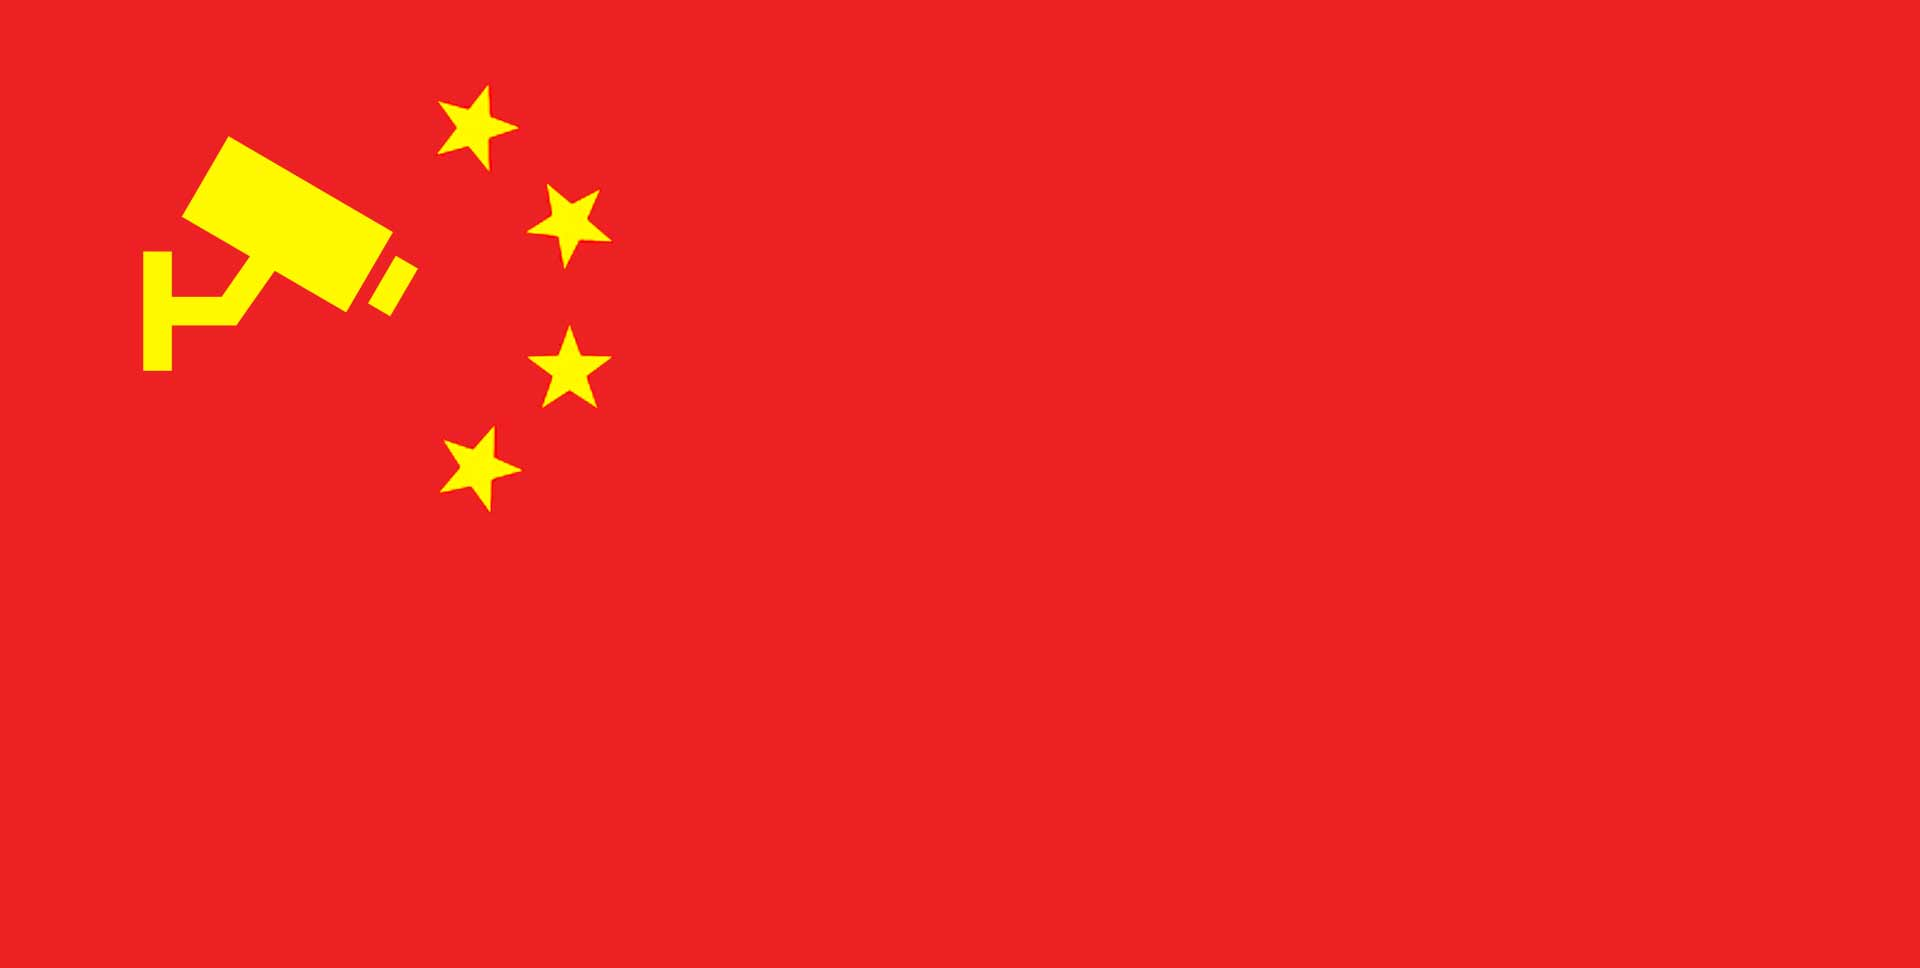 Chinese flag but with camera instead of stars